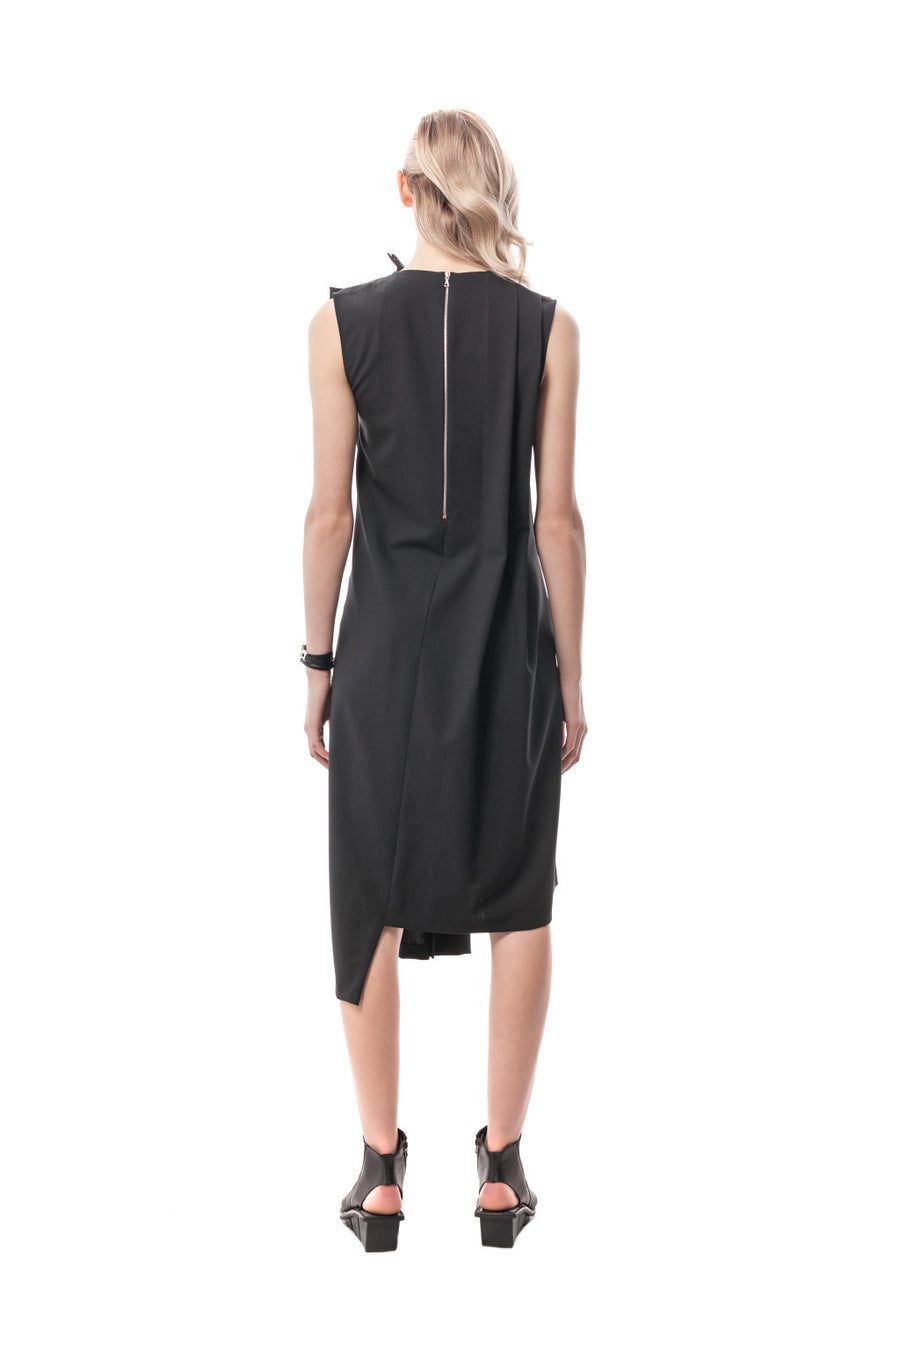 Black Rivoli Asymmetrical Romper Dress, wool